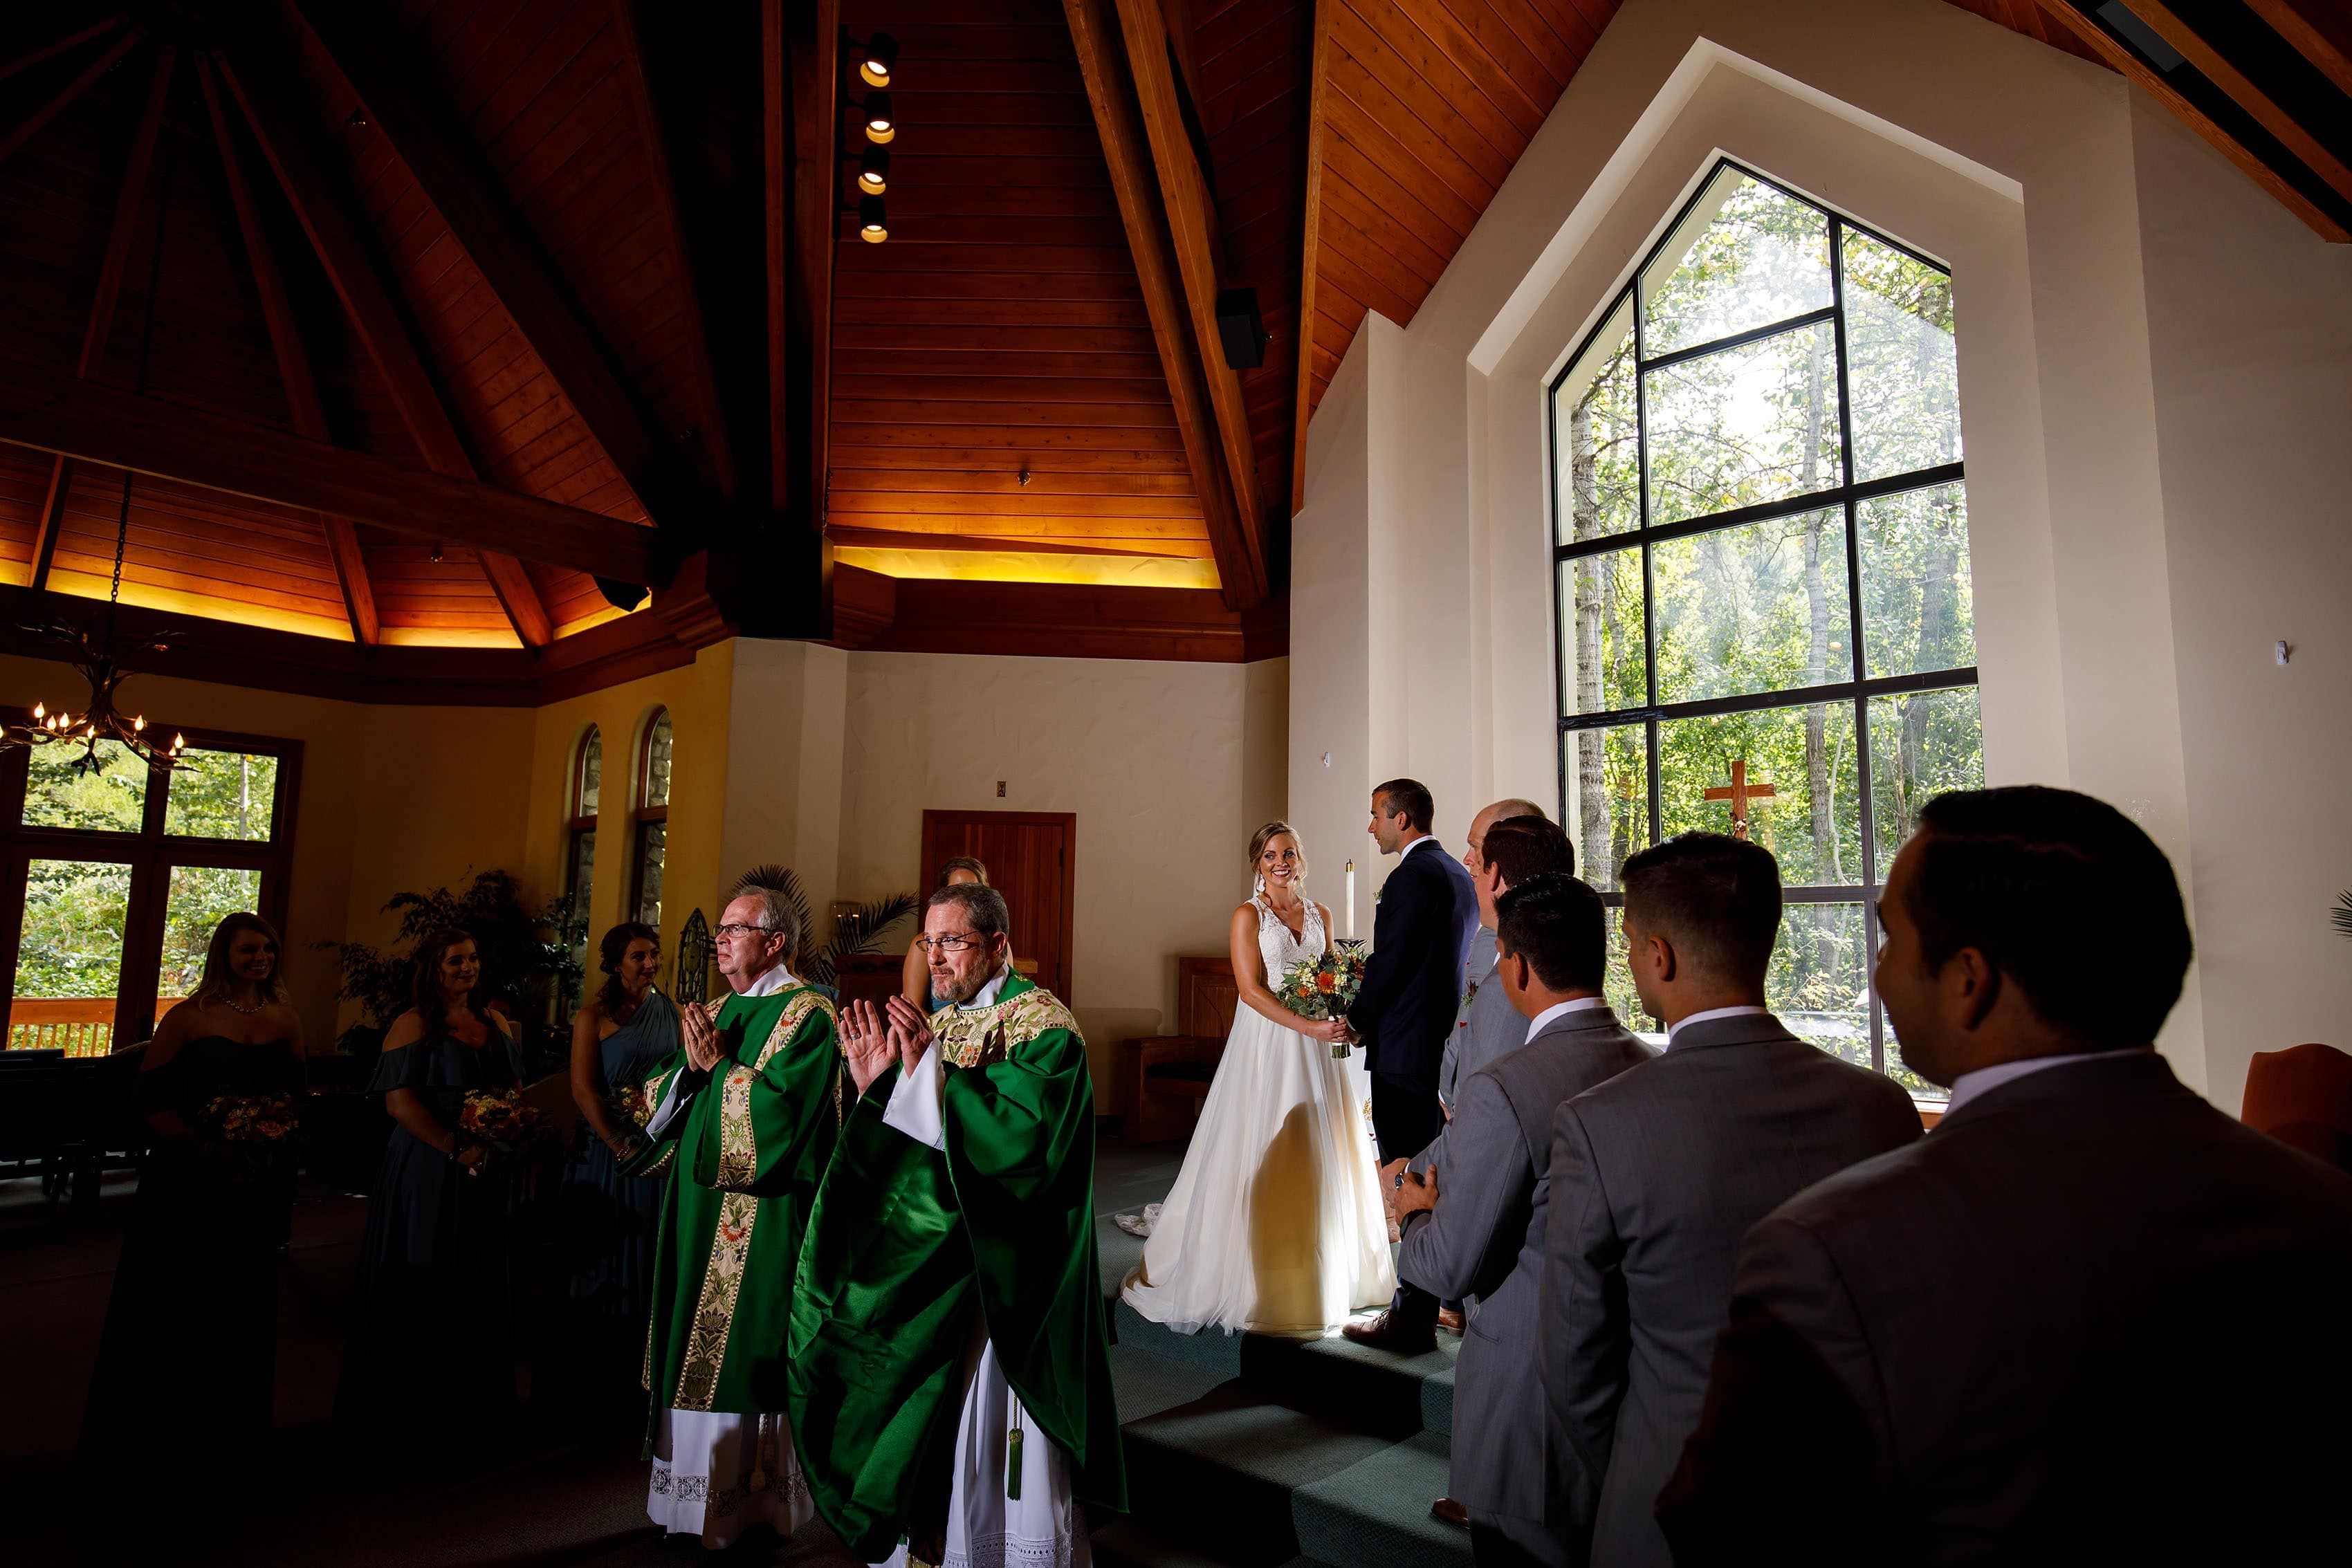 Meghan and Kevin's Colorado mountain catholic wedding at the Chapel at Beaver Creek